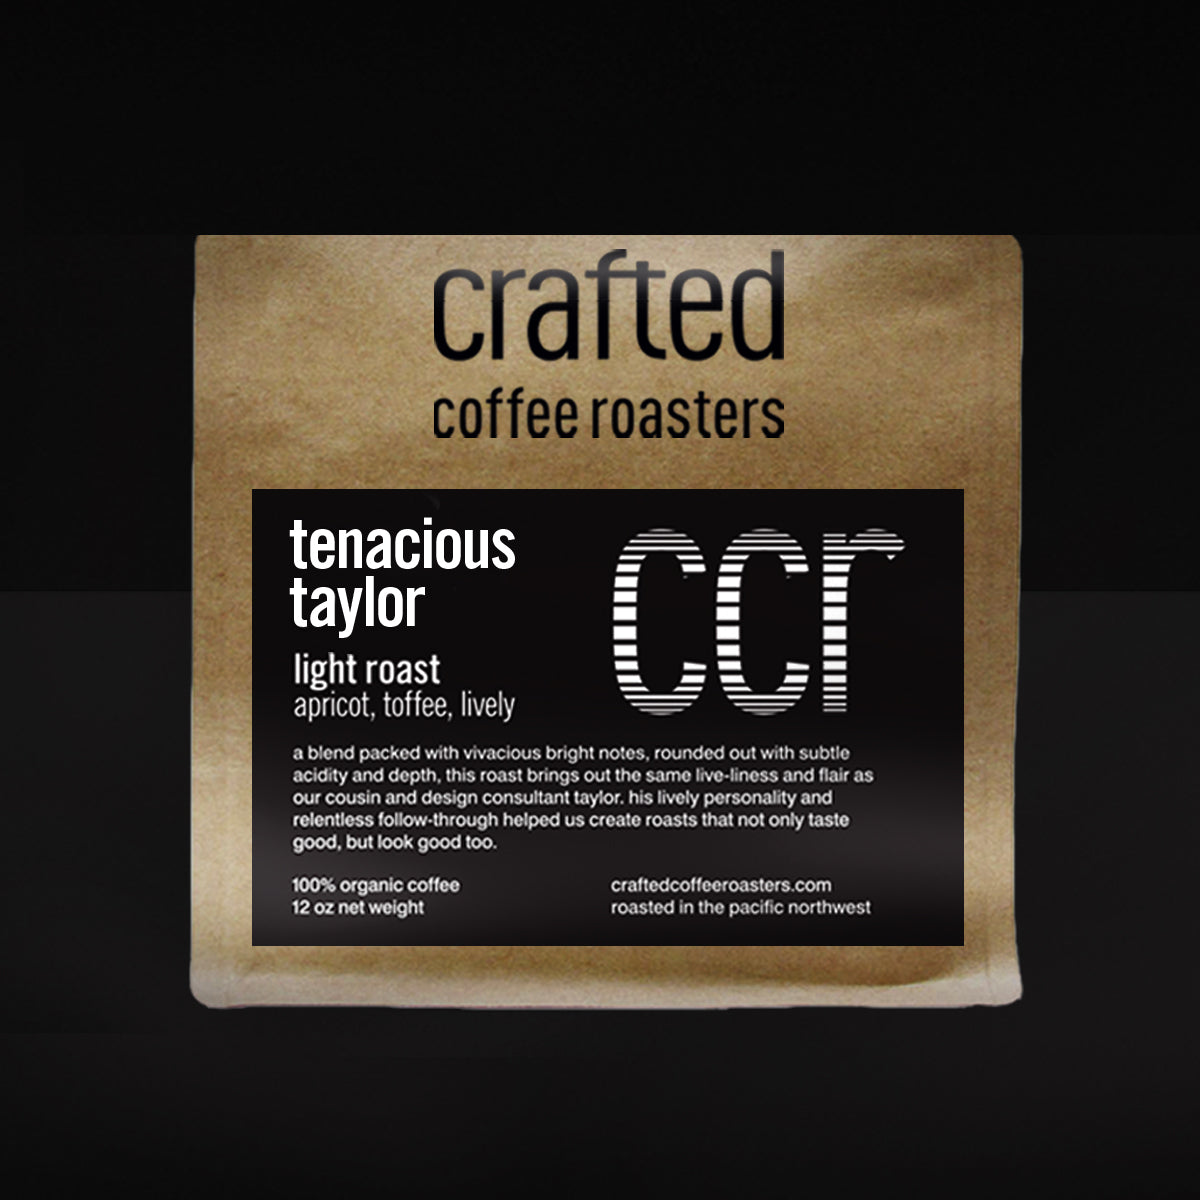 tenacious taylor – light roast